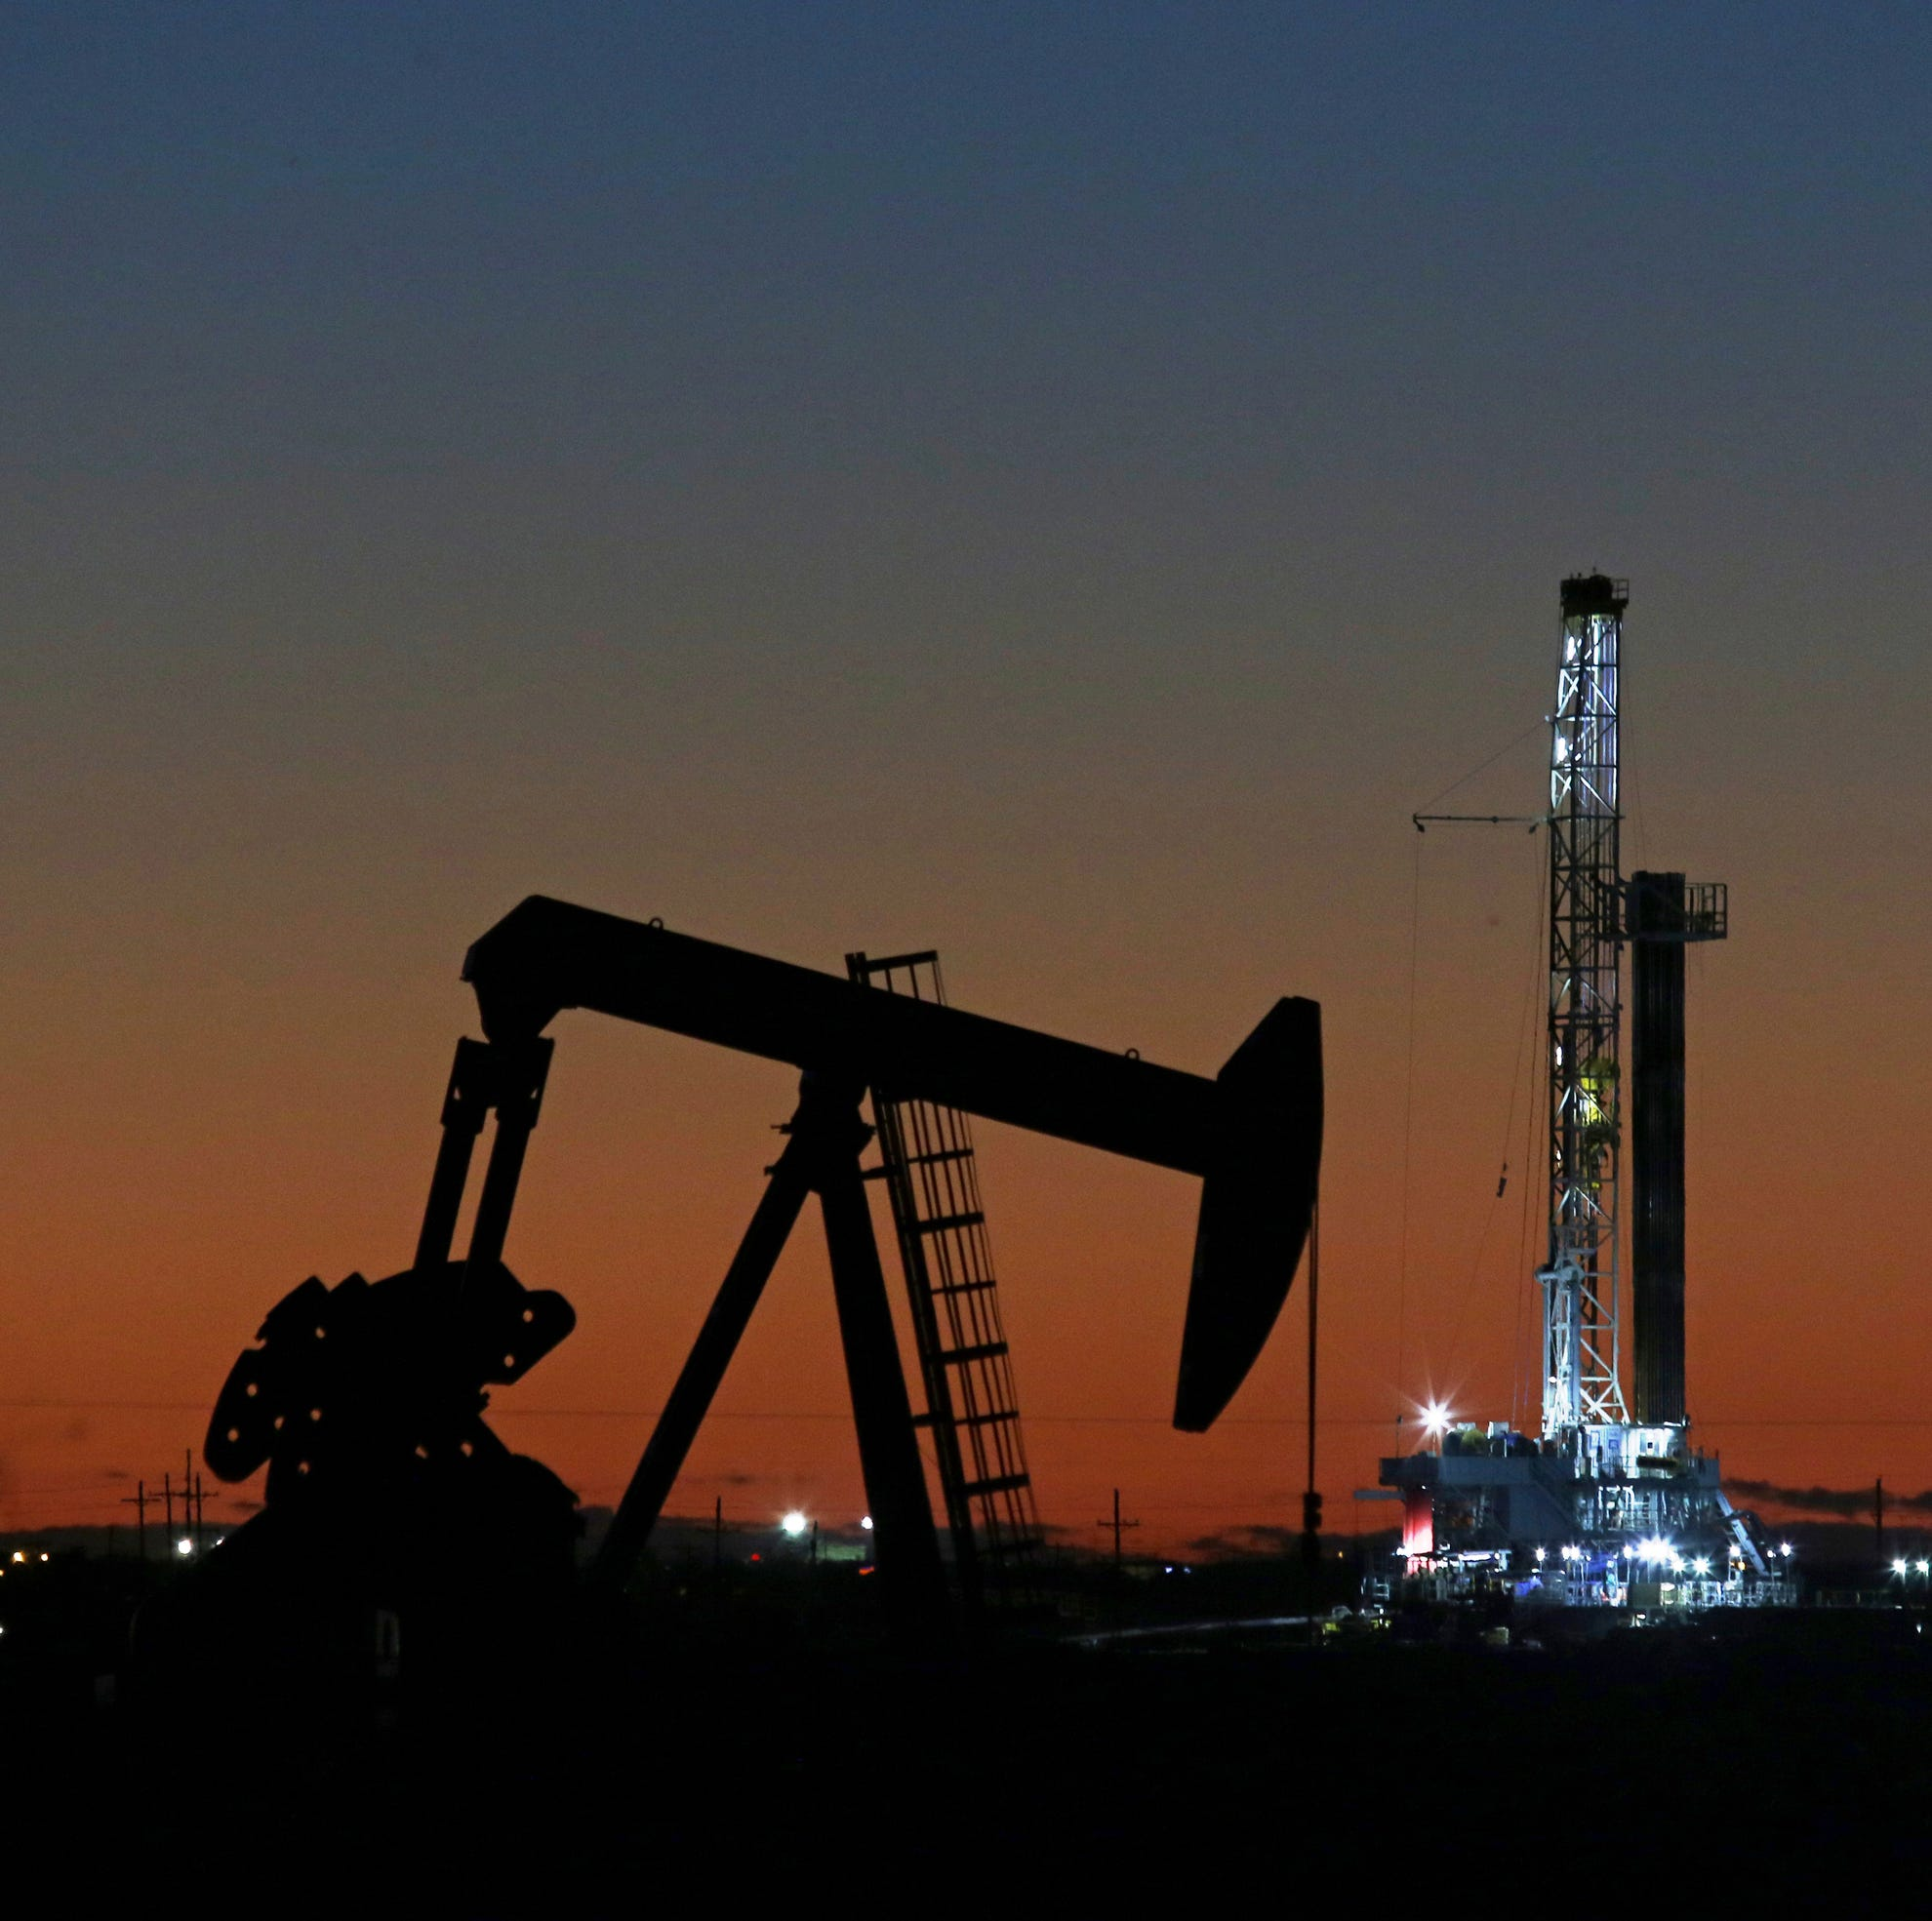 New oil discovery in Permian is good news for industry, but also a warhead